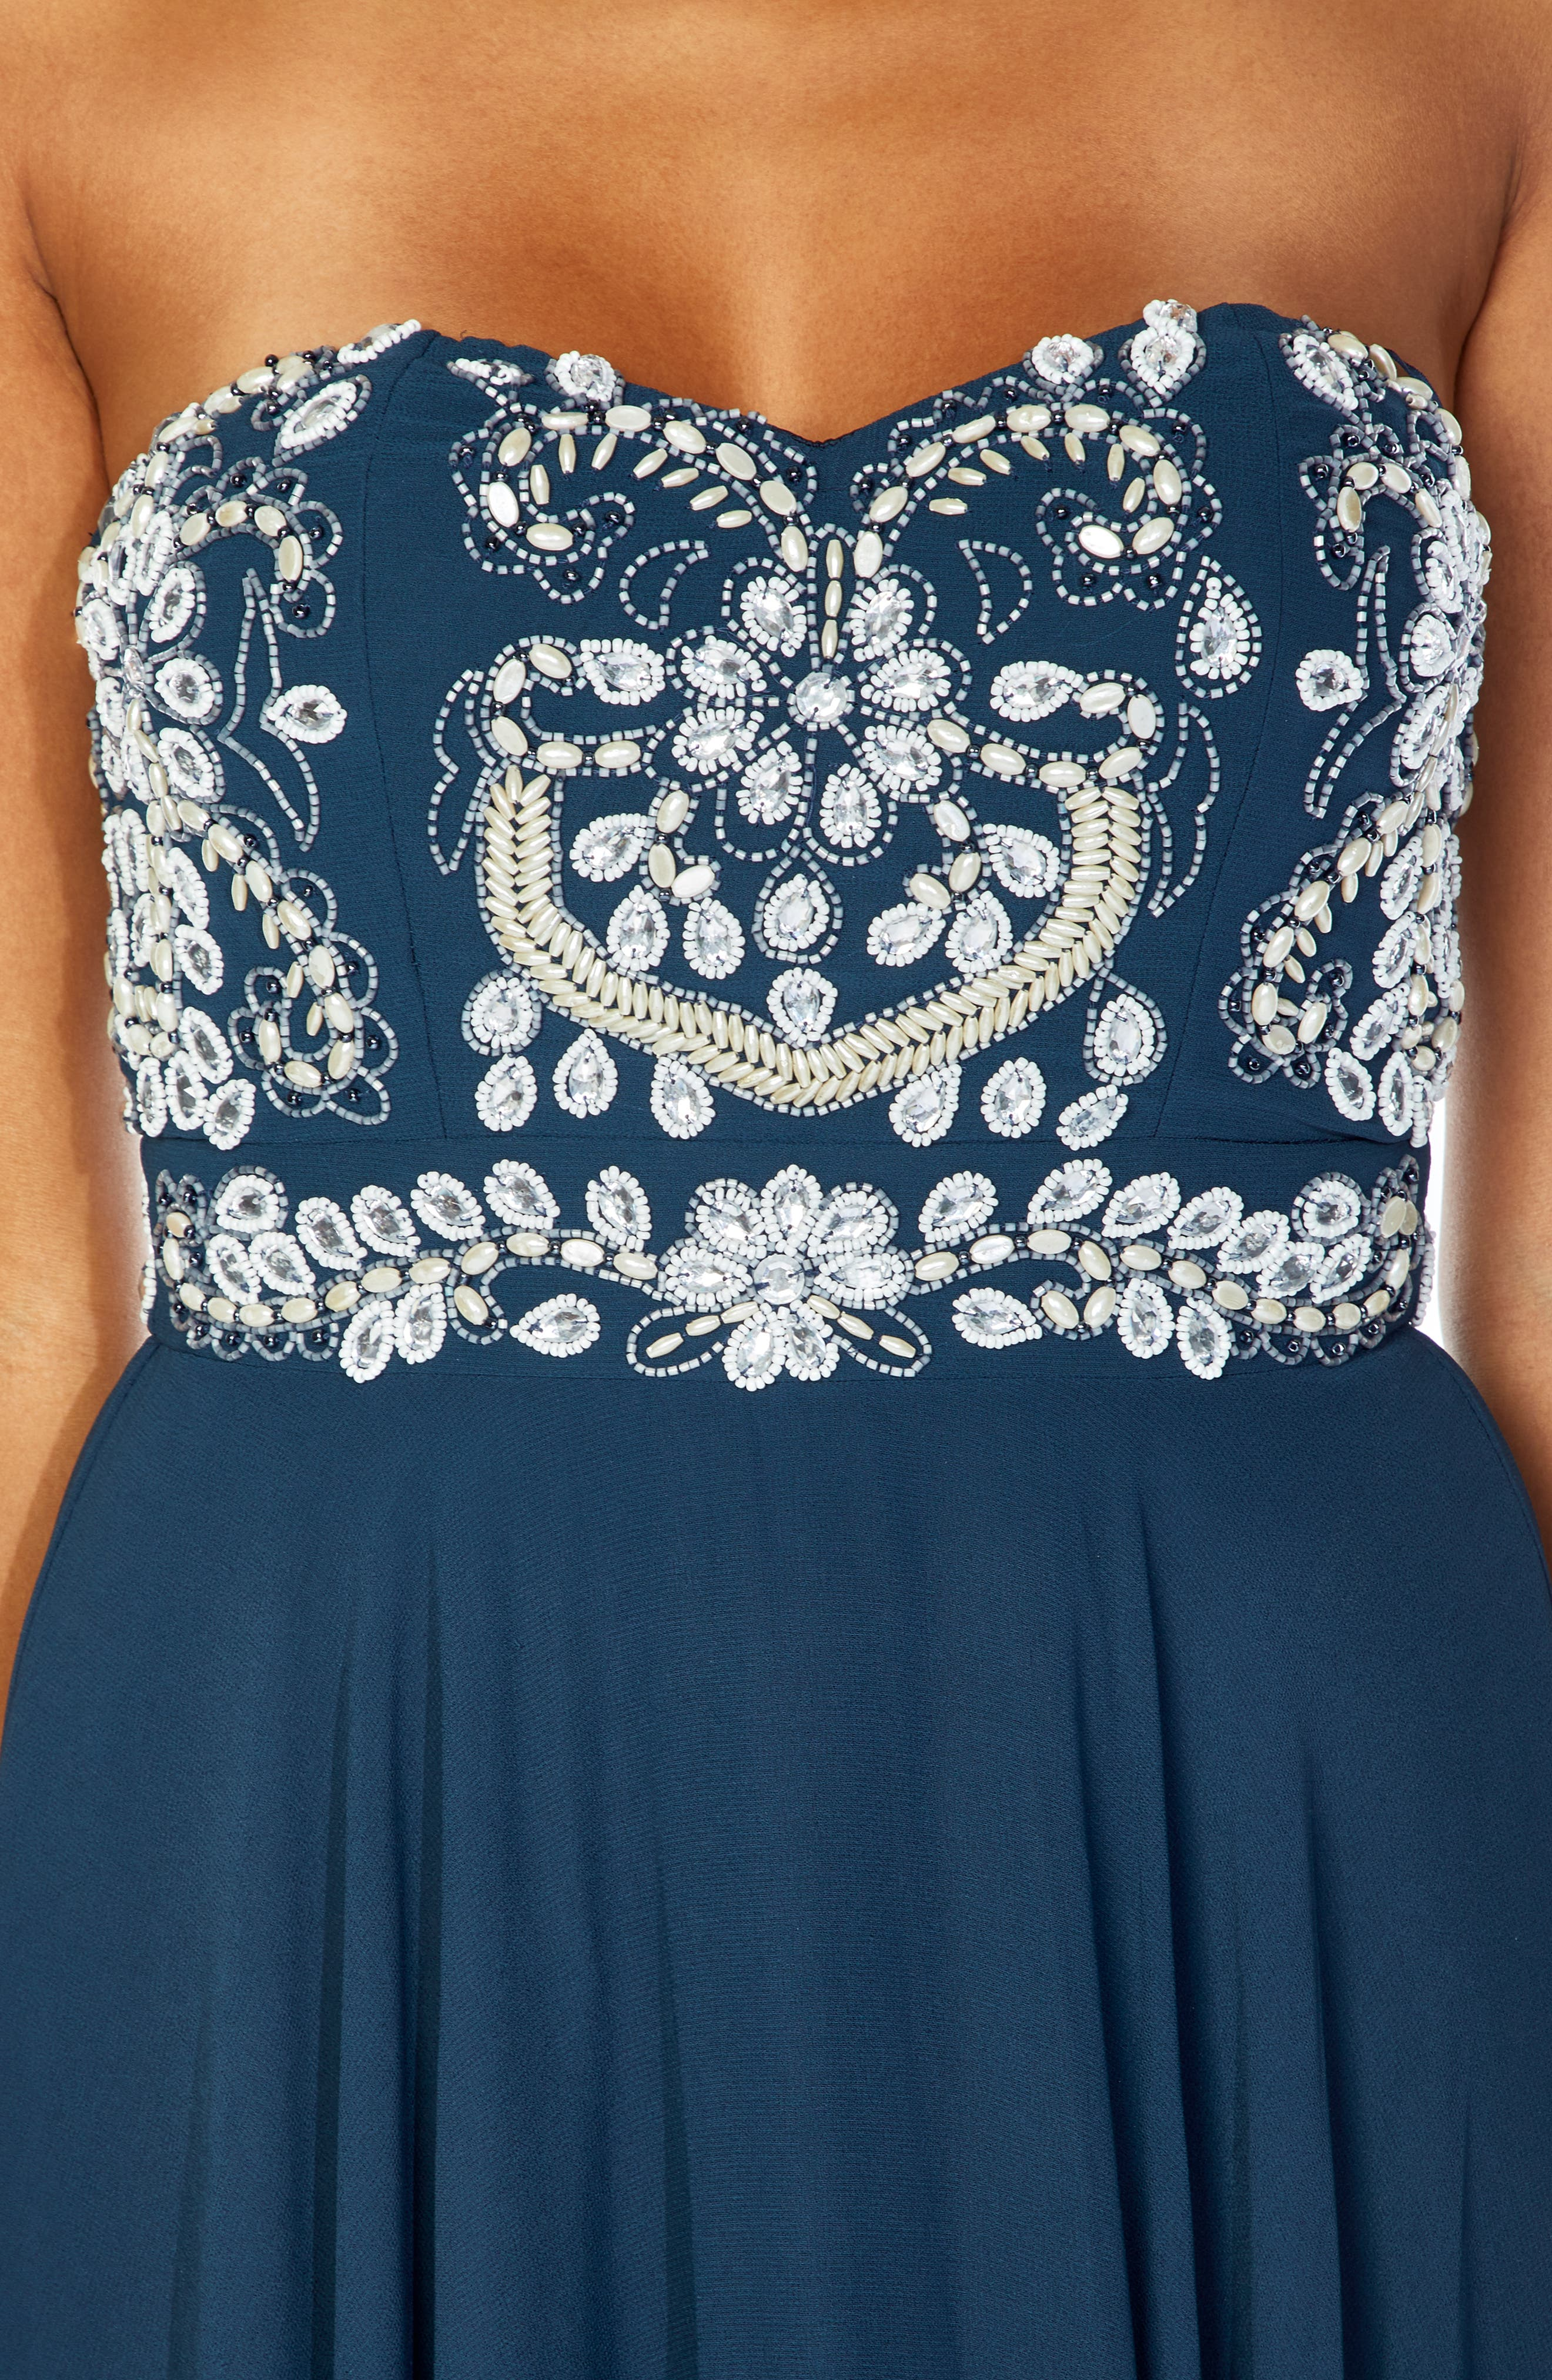 Amelia Strapless Fit & Flare Dress,                             Alternate thumbnail 3, color,                             NAVY